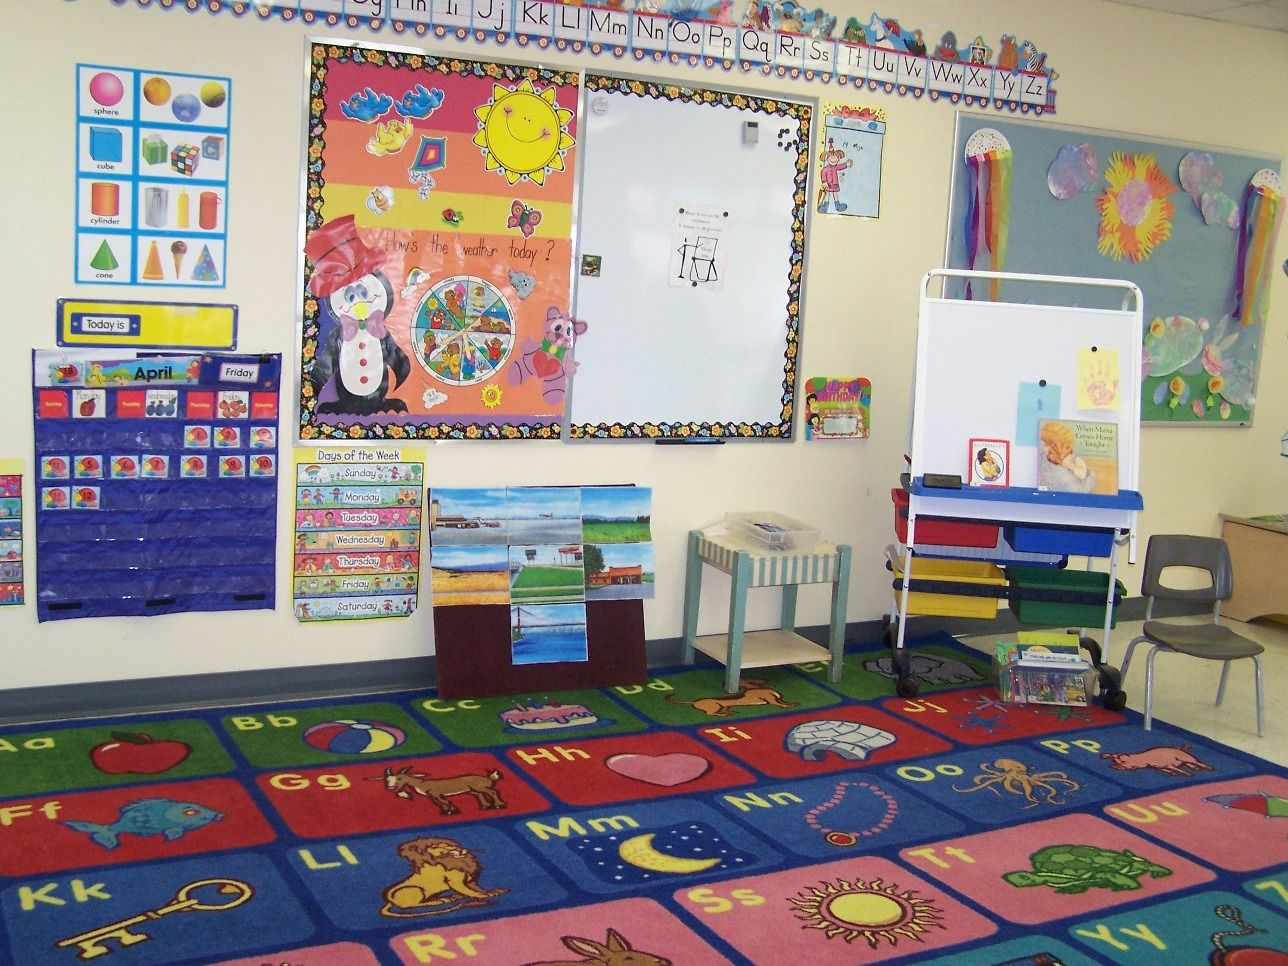 Innovative First Grade Classroom ~ My classroom will be full of learning numbers shapes